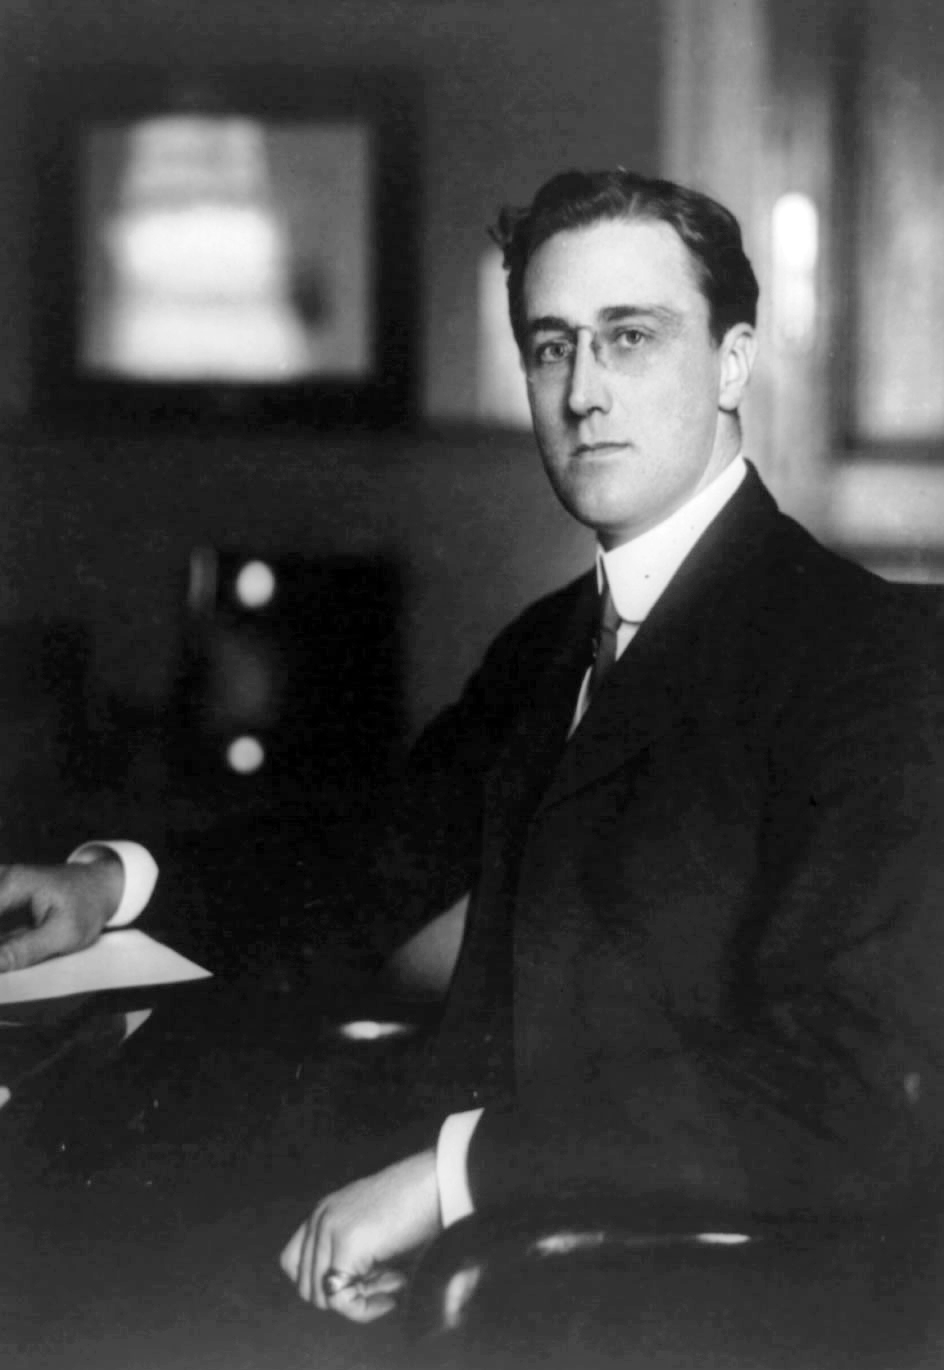 Franklin Delano Roosevelt as Assistant Secretary of the Navy, 1913.